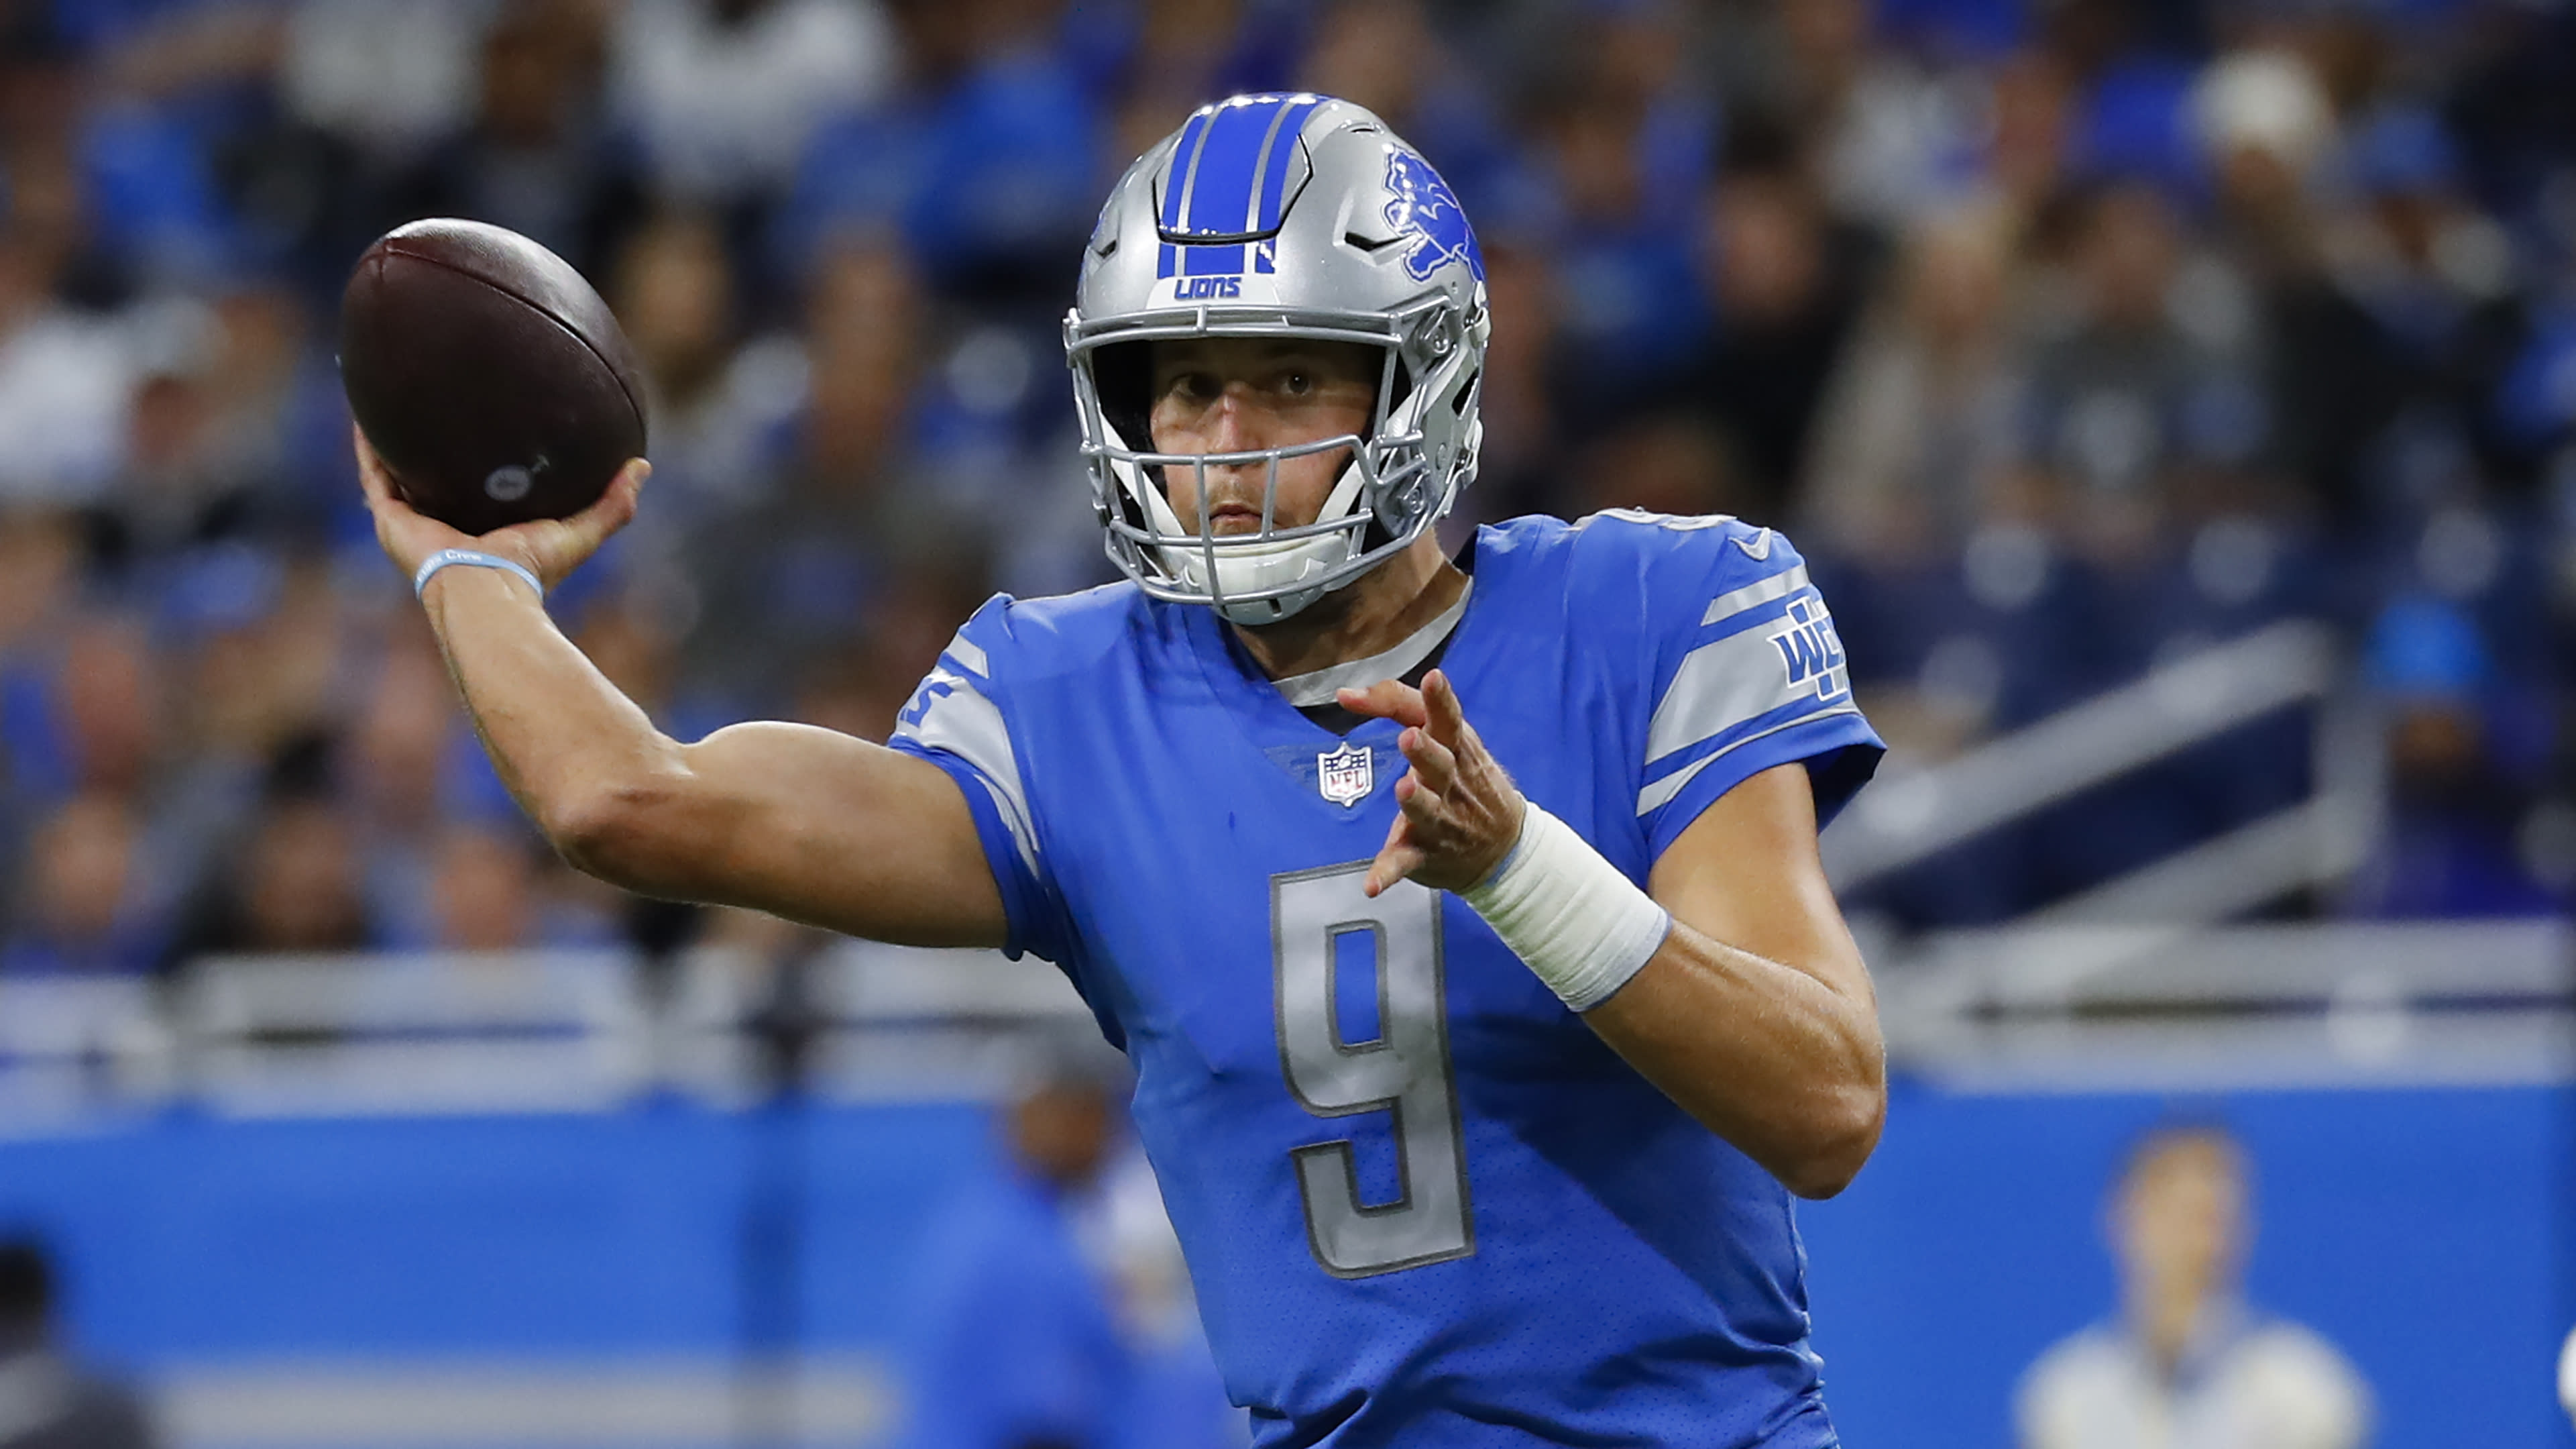 Lions say they will not trade QB Matthew Stafford